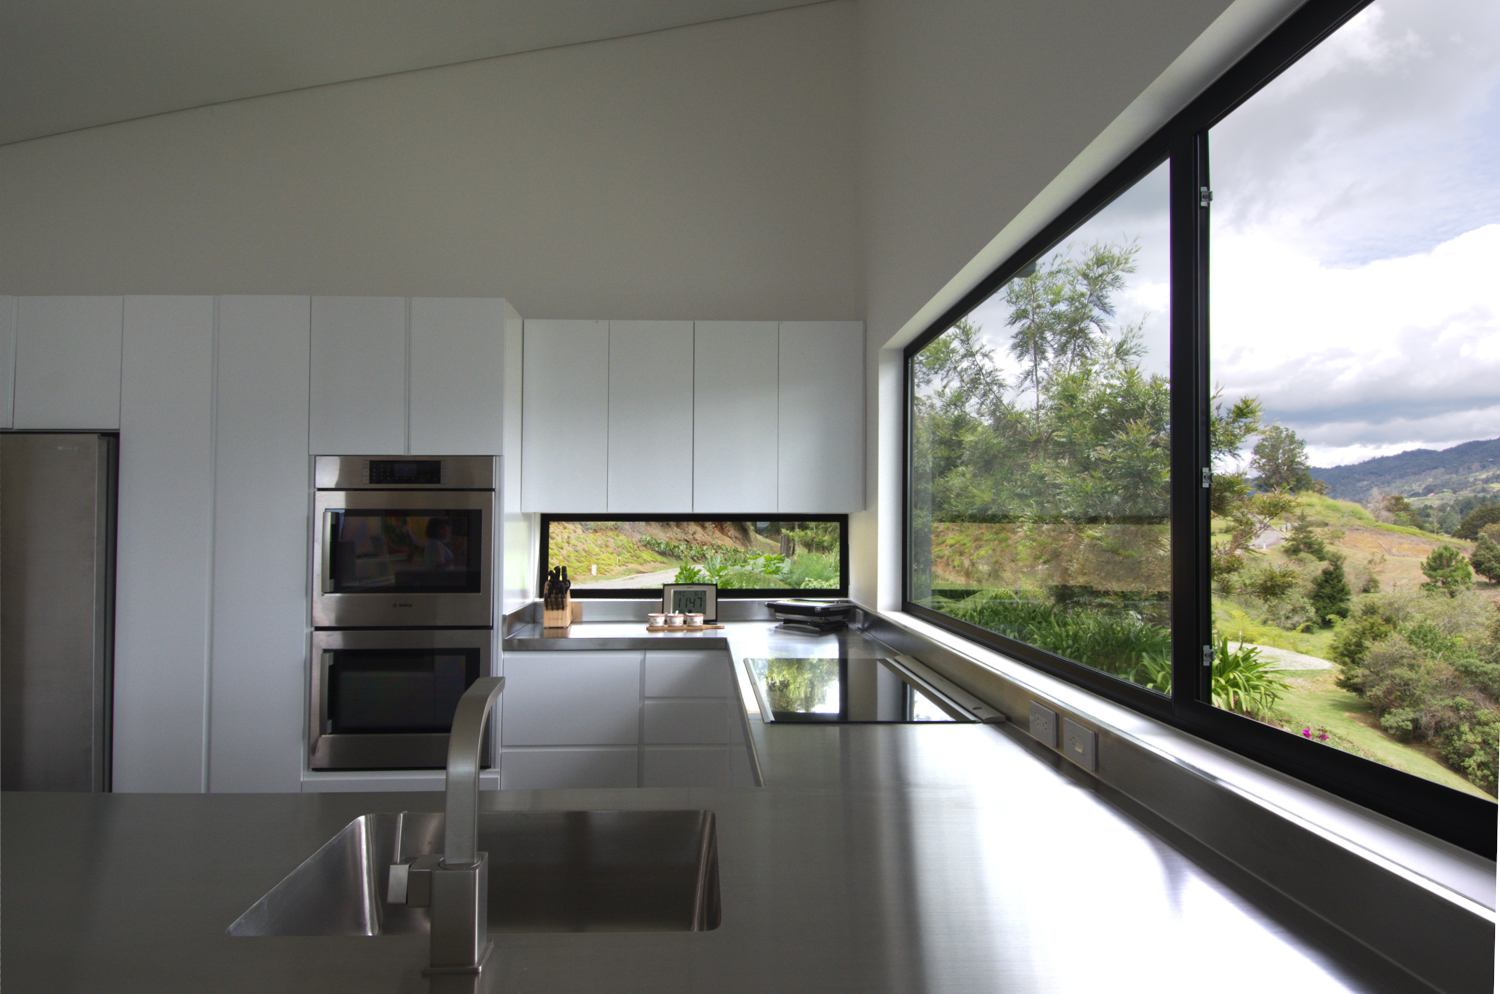 Kitchen with large windows and double wall oven